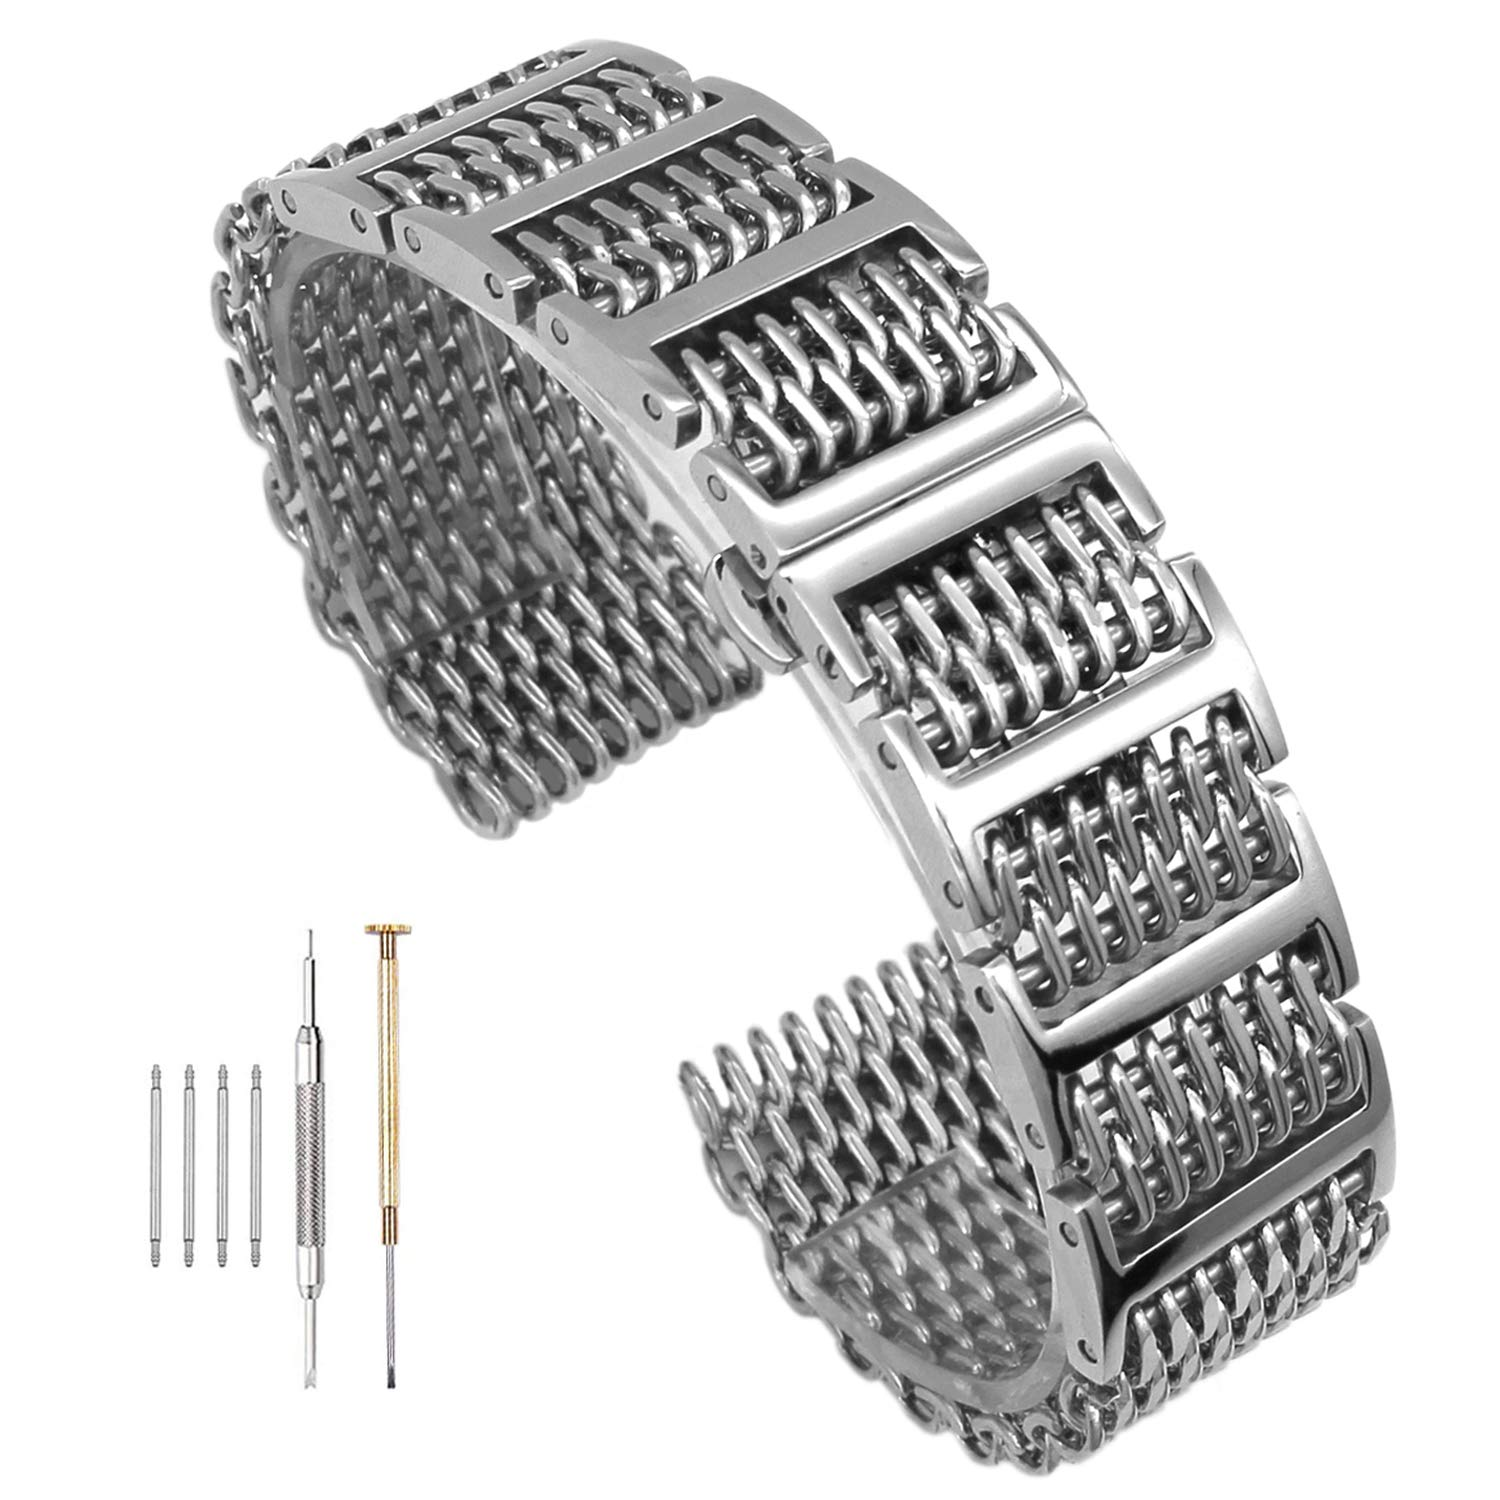 20mm/22mm24mm Shark Mesh H Link Polished Stainless Steel Watch Band Butterfly Buckle Silver/Black